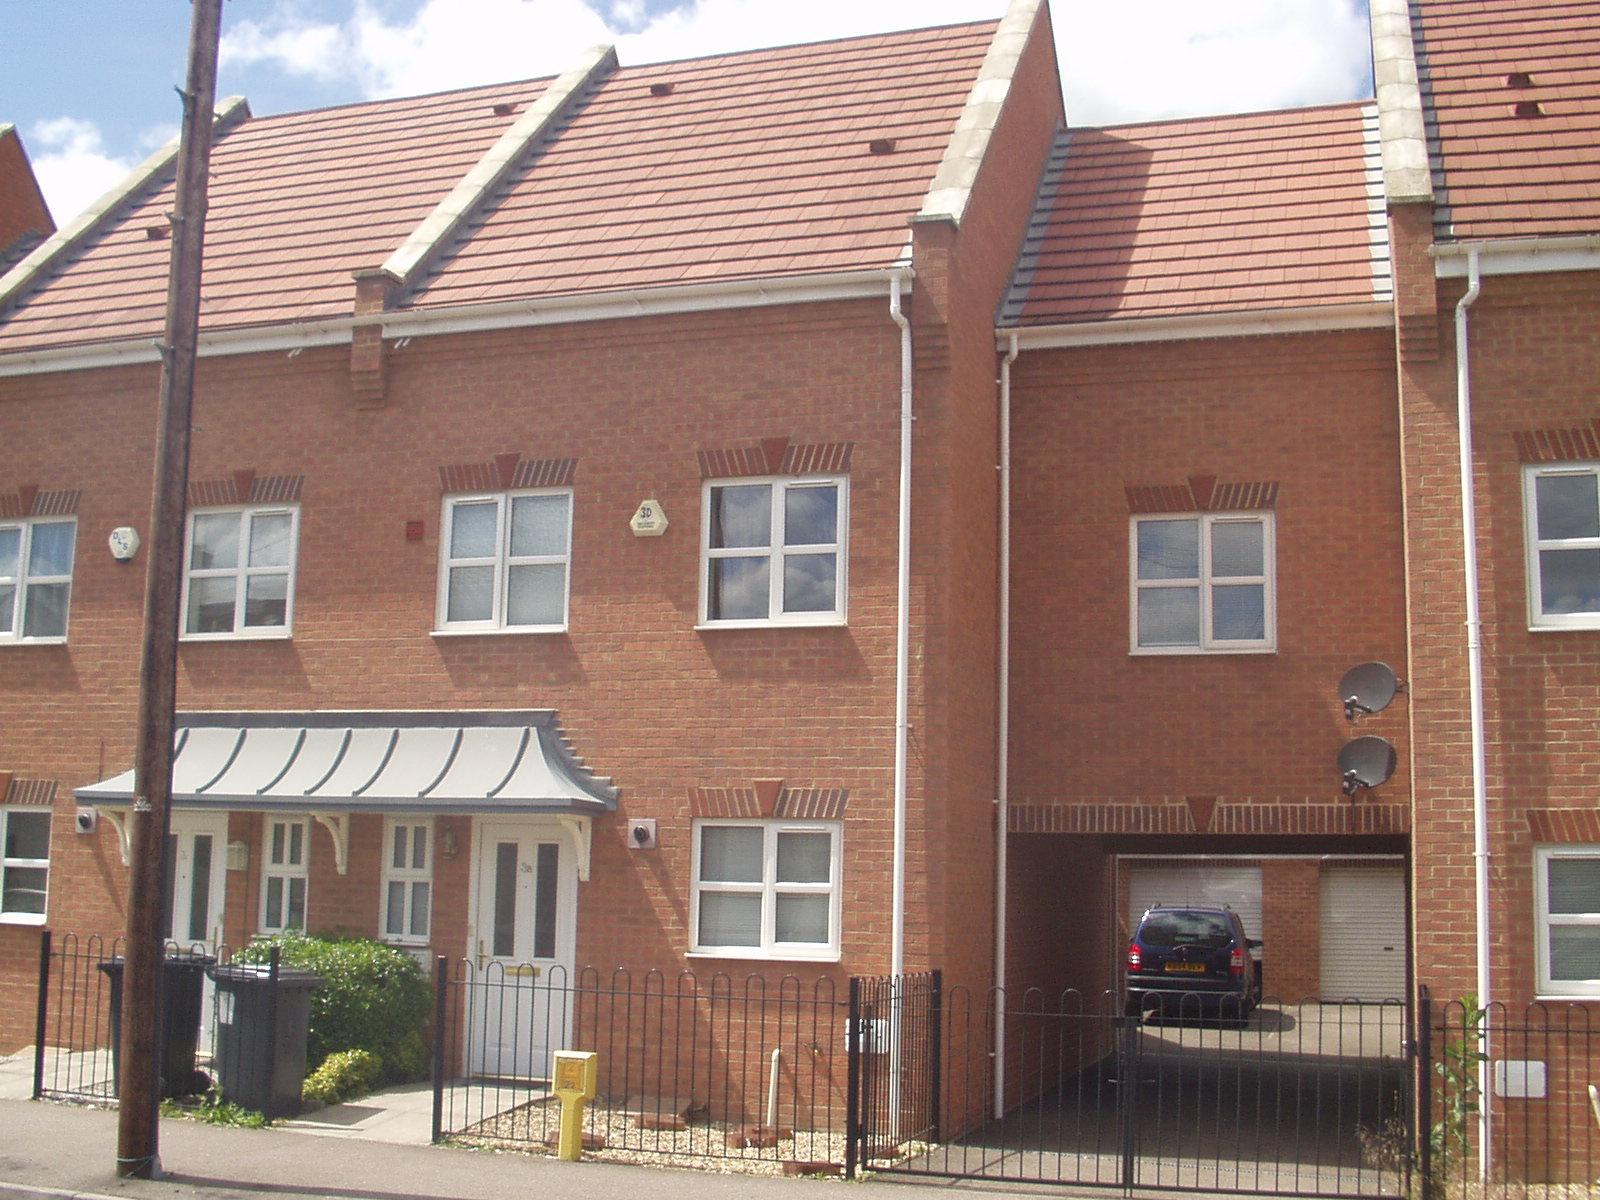 3 bedroom townhouse for rent in bedford rentals lettings for 3 bedroom townhouse for rent